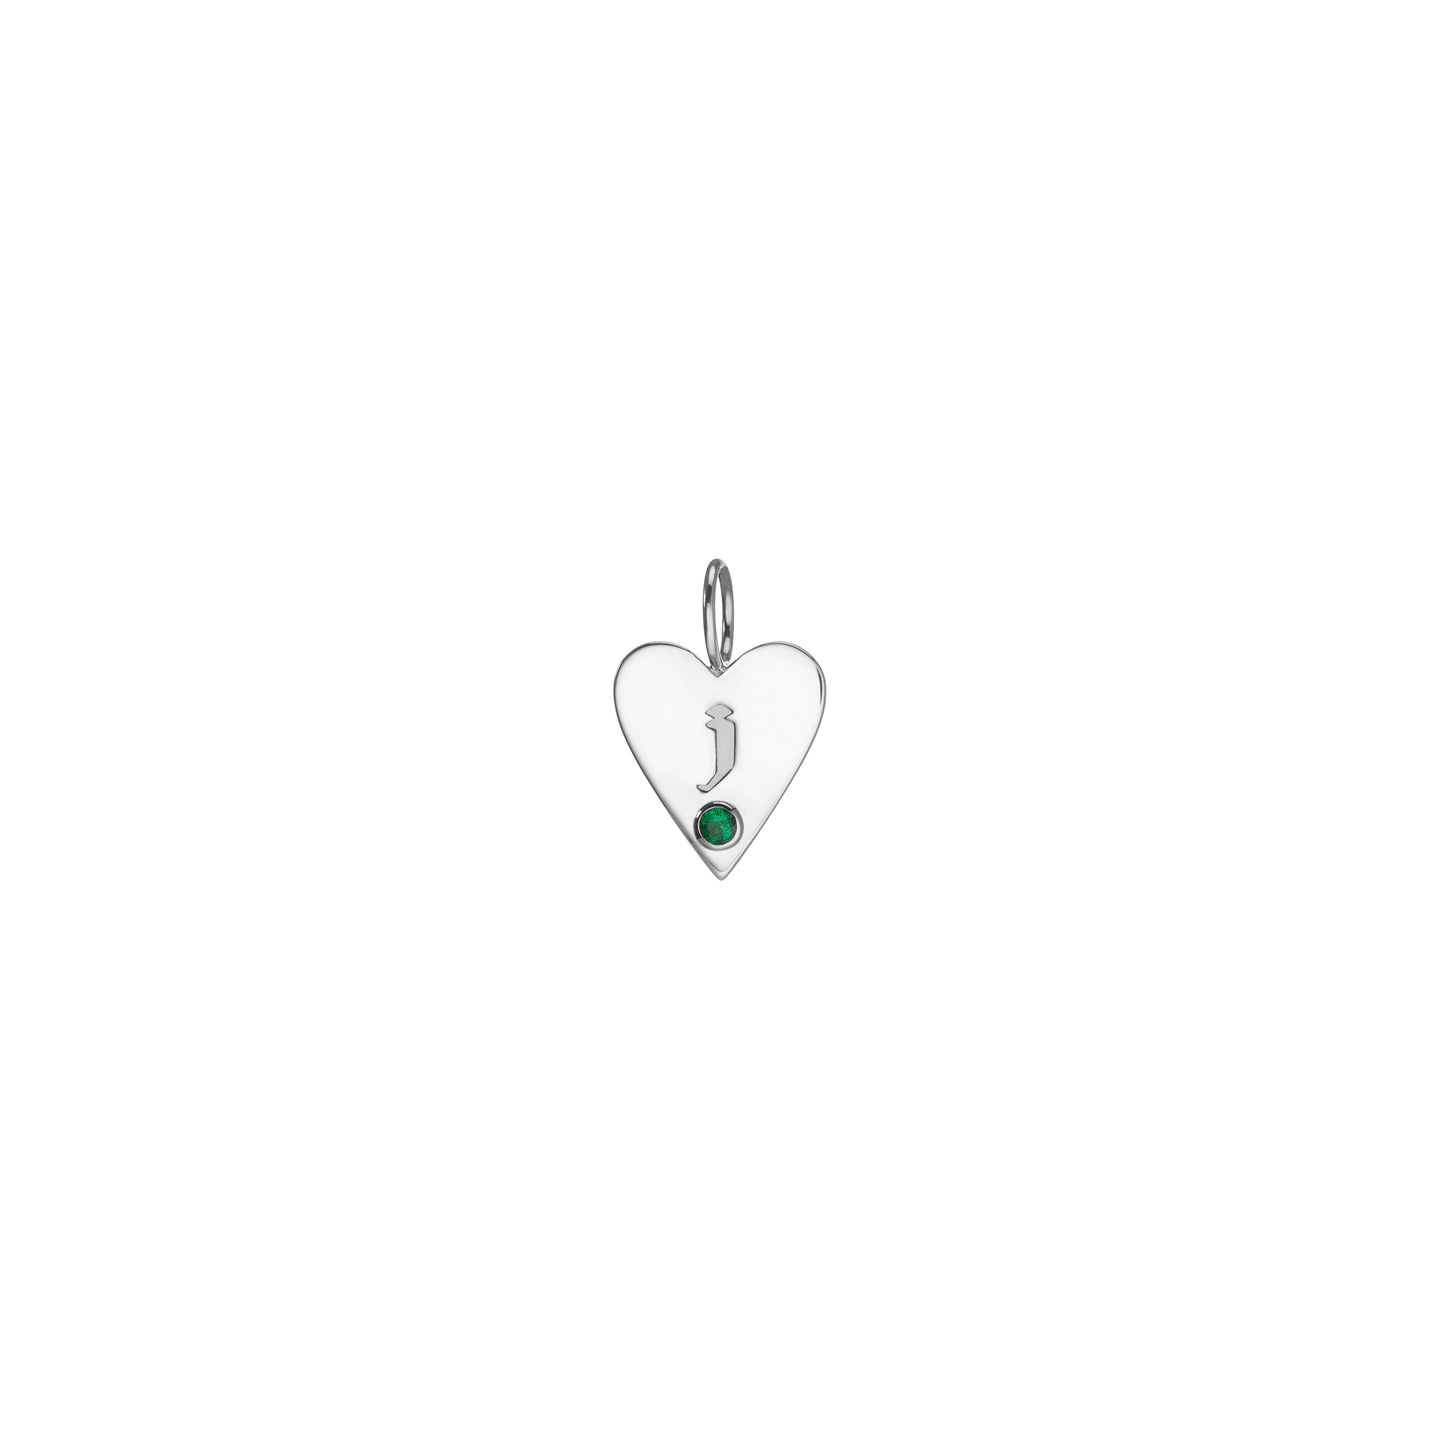 Medium Family Gothic Birthstone Heart